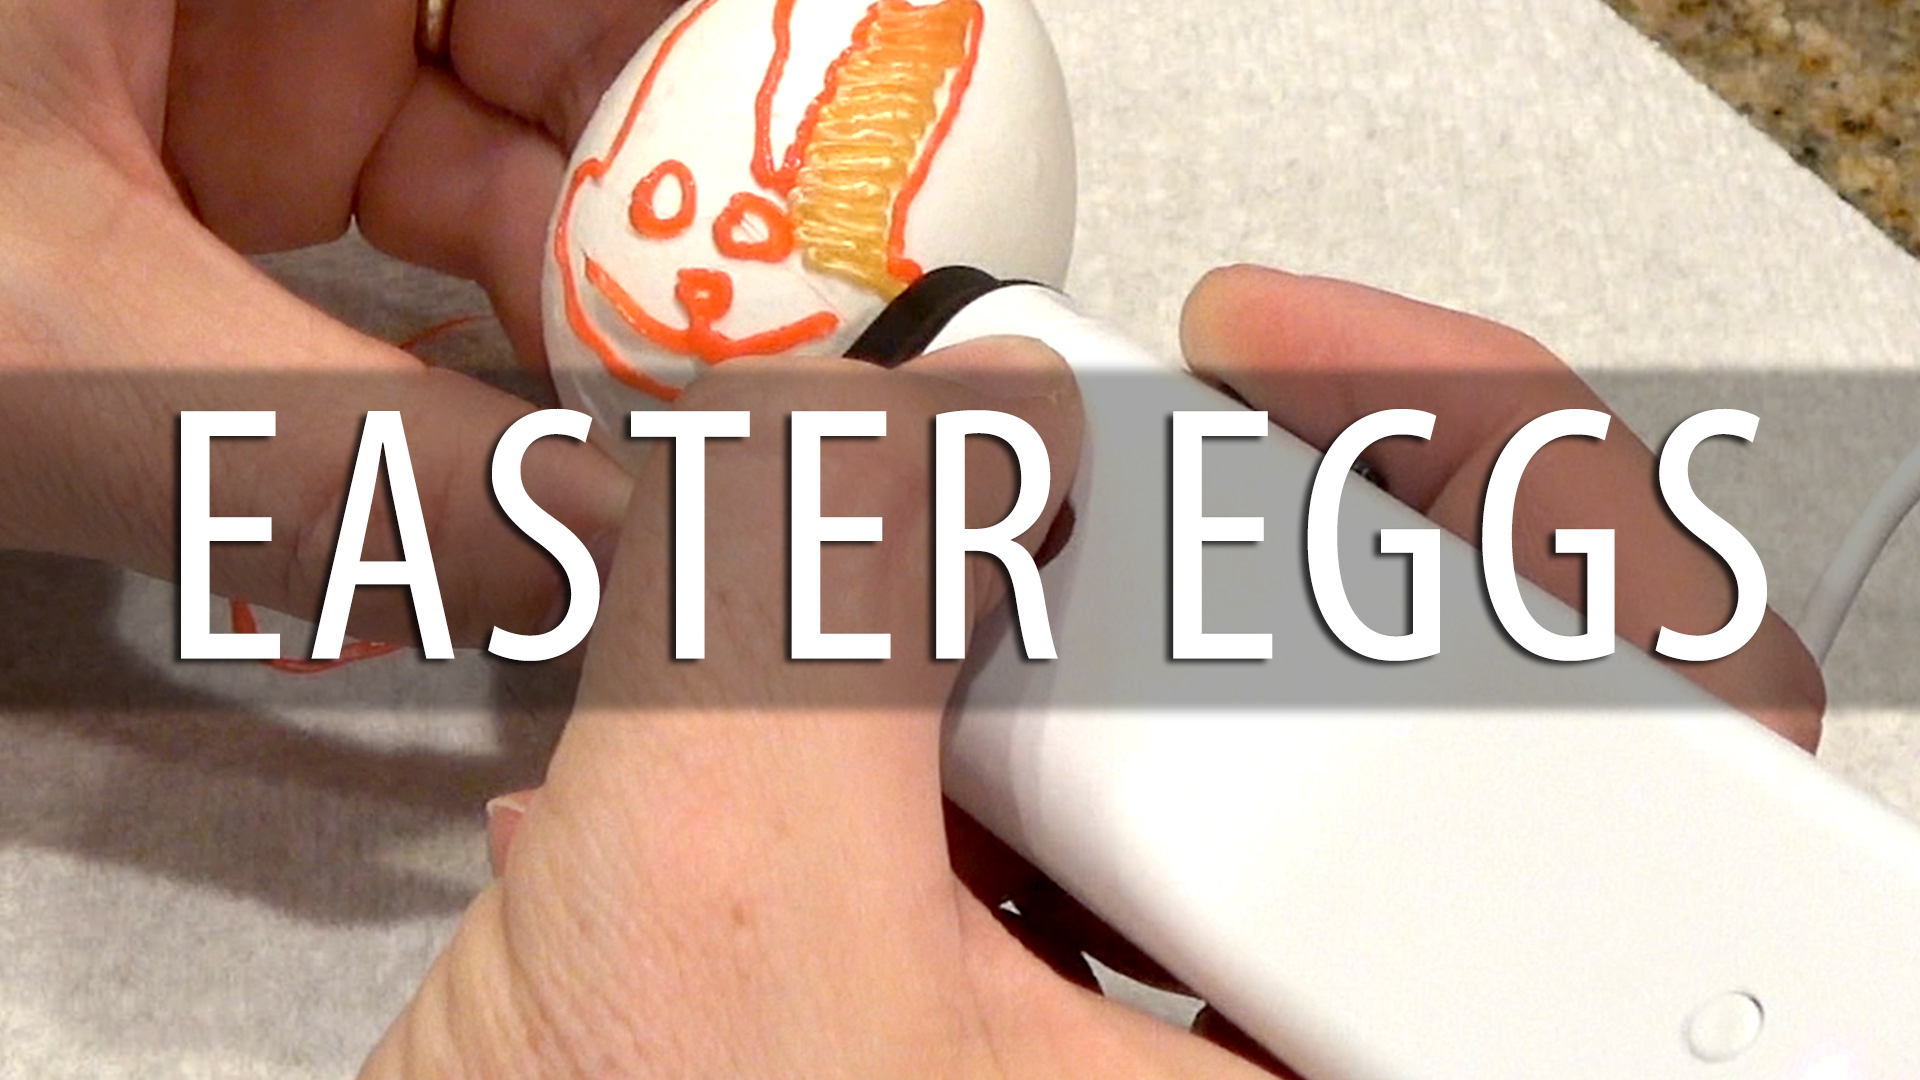 3dsimo Unboxing and Easter Eggs